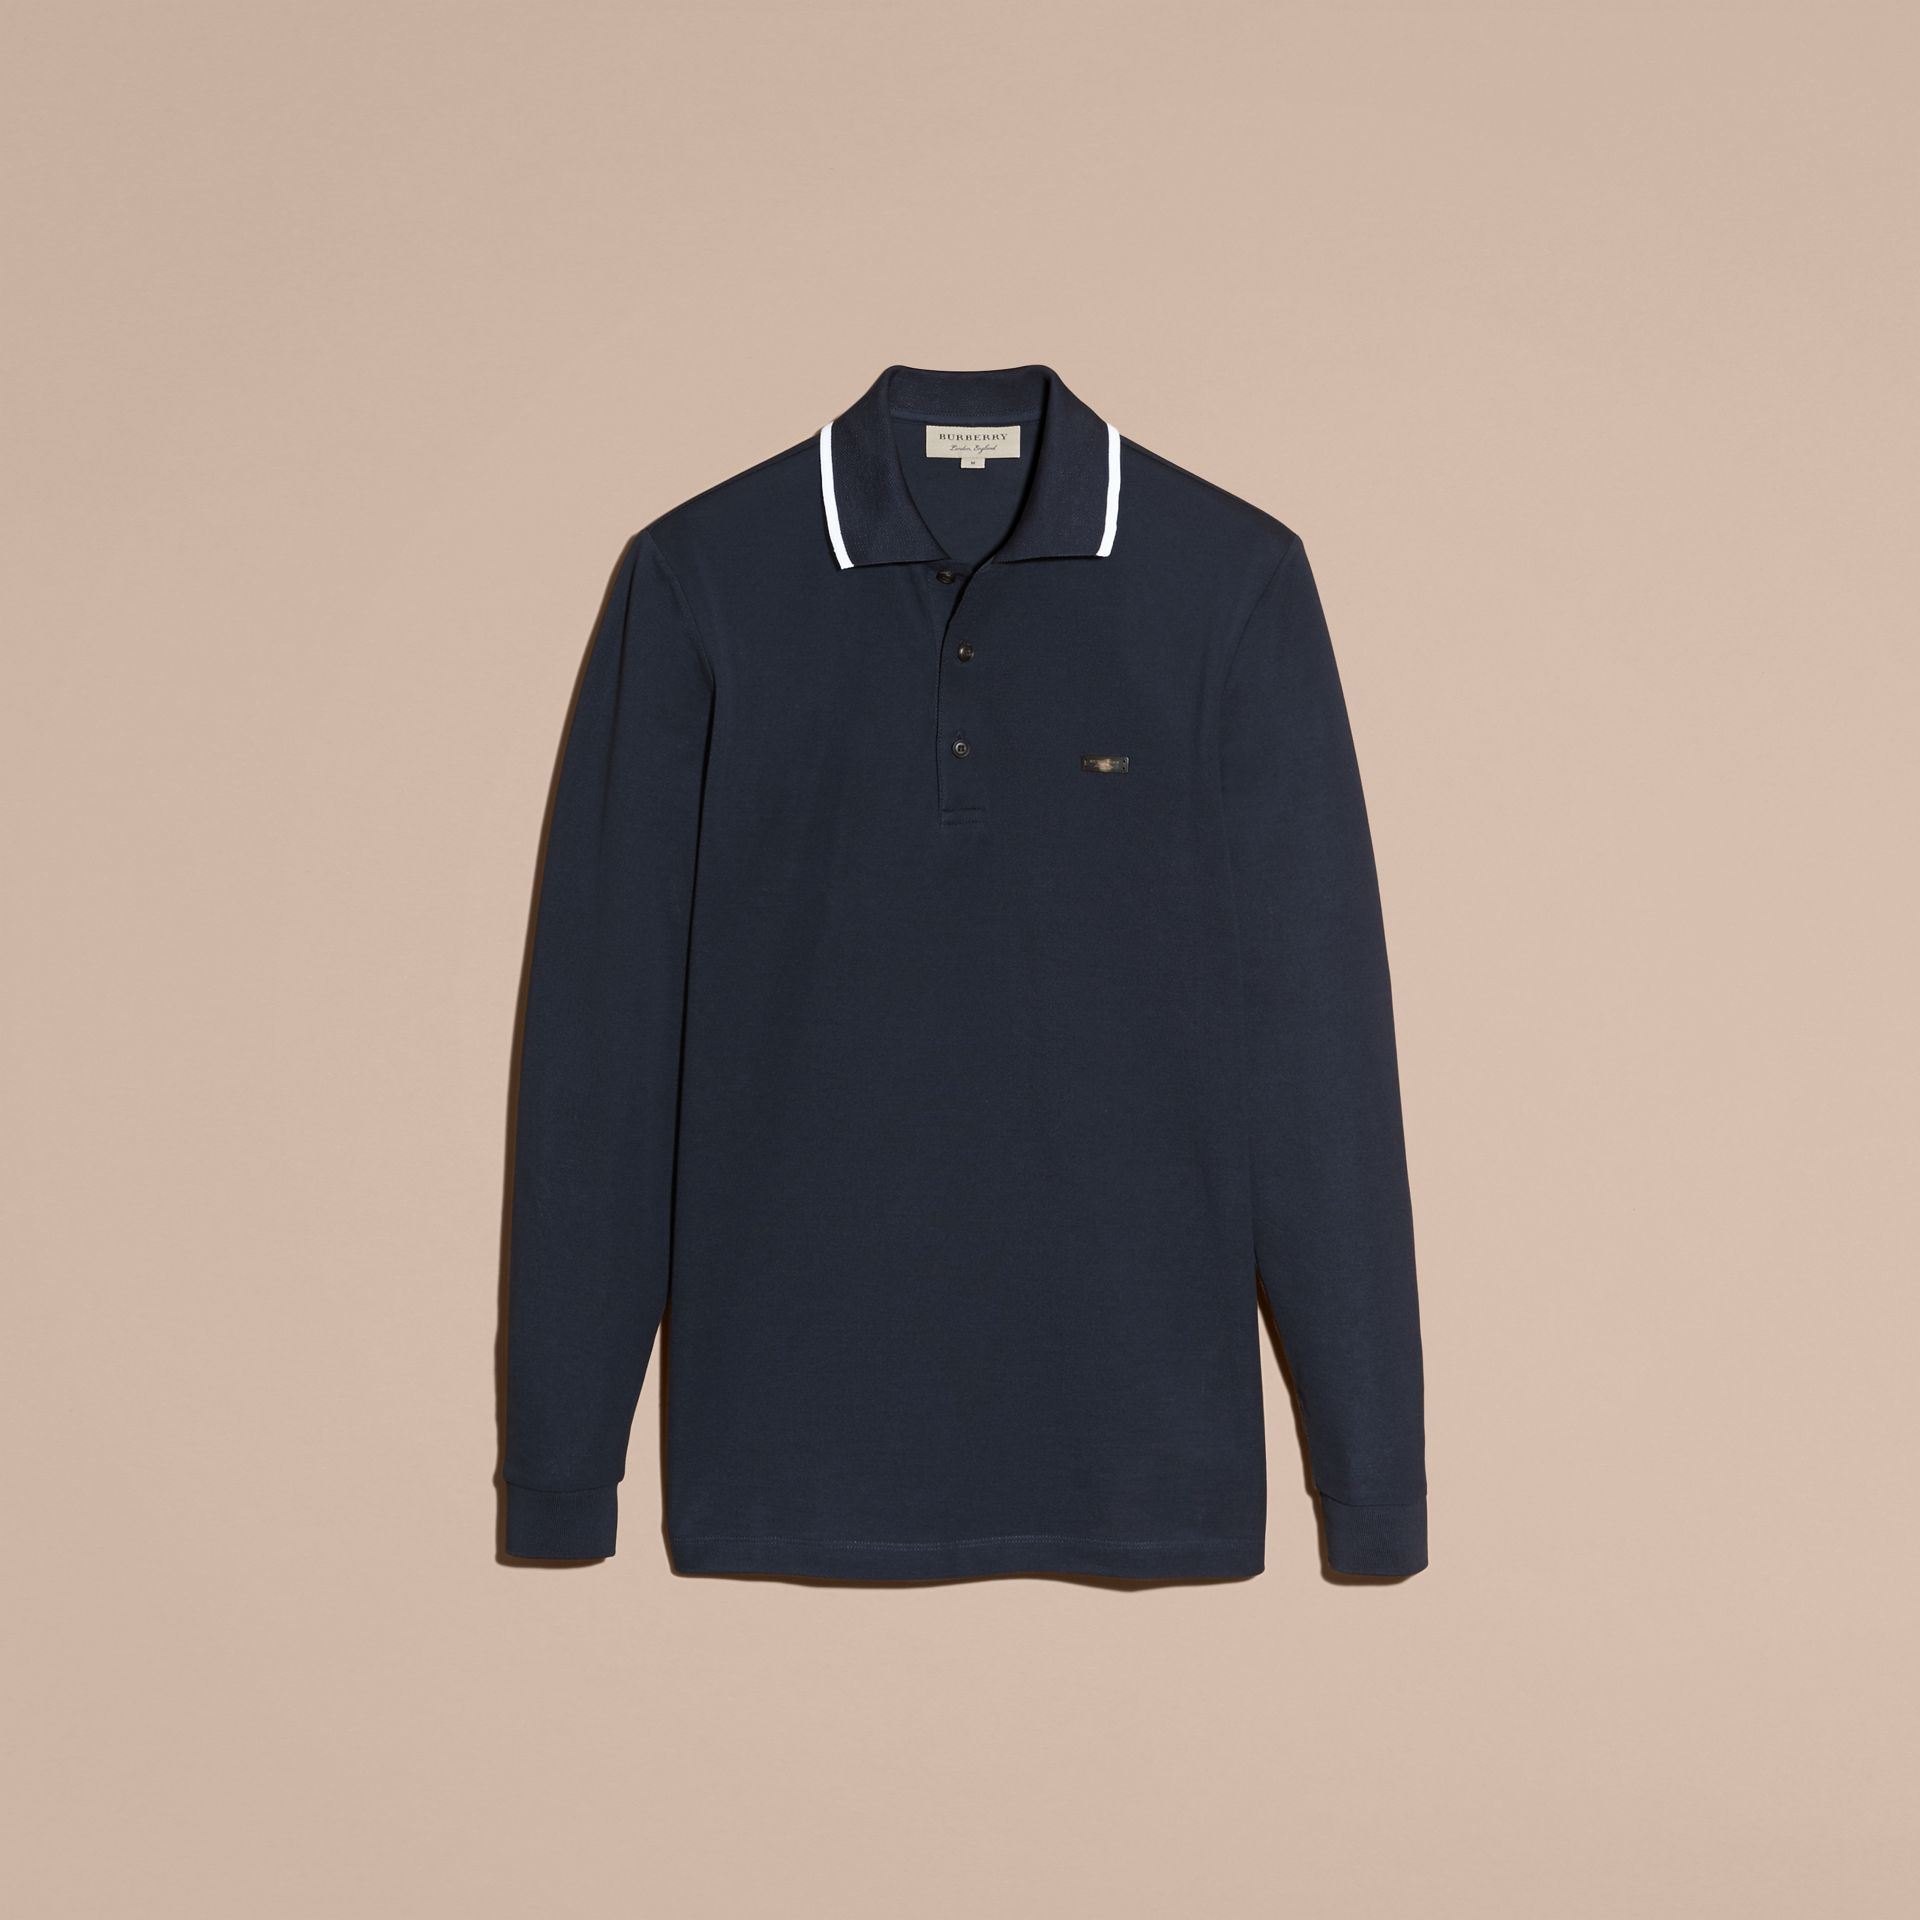 Long-sleeved Tipped Cotton Piqué Polo Shirt Navy - gallery image 4